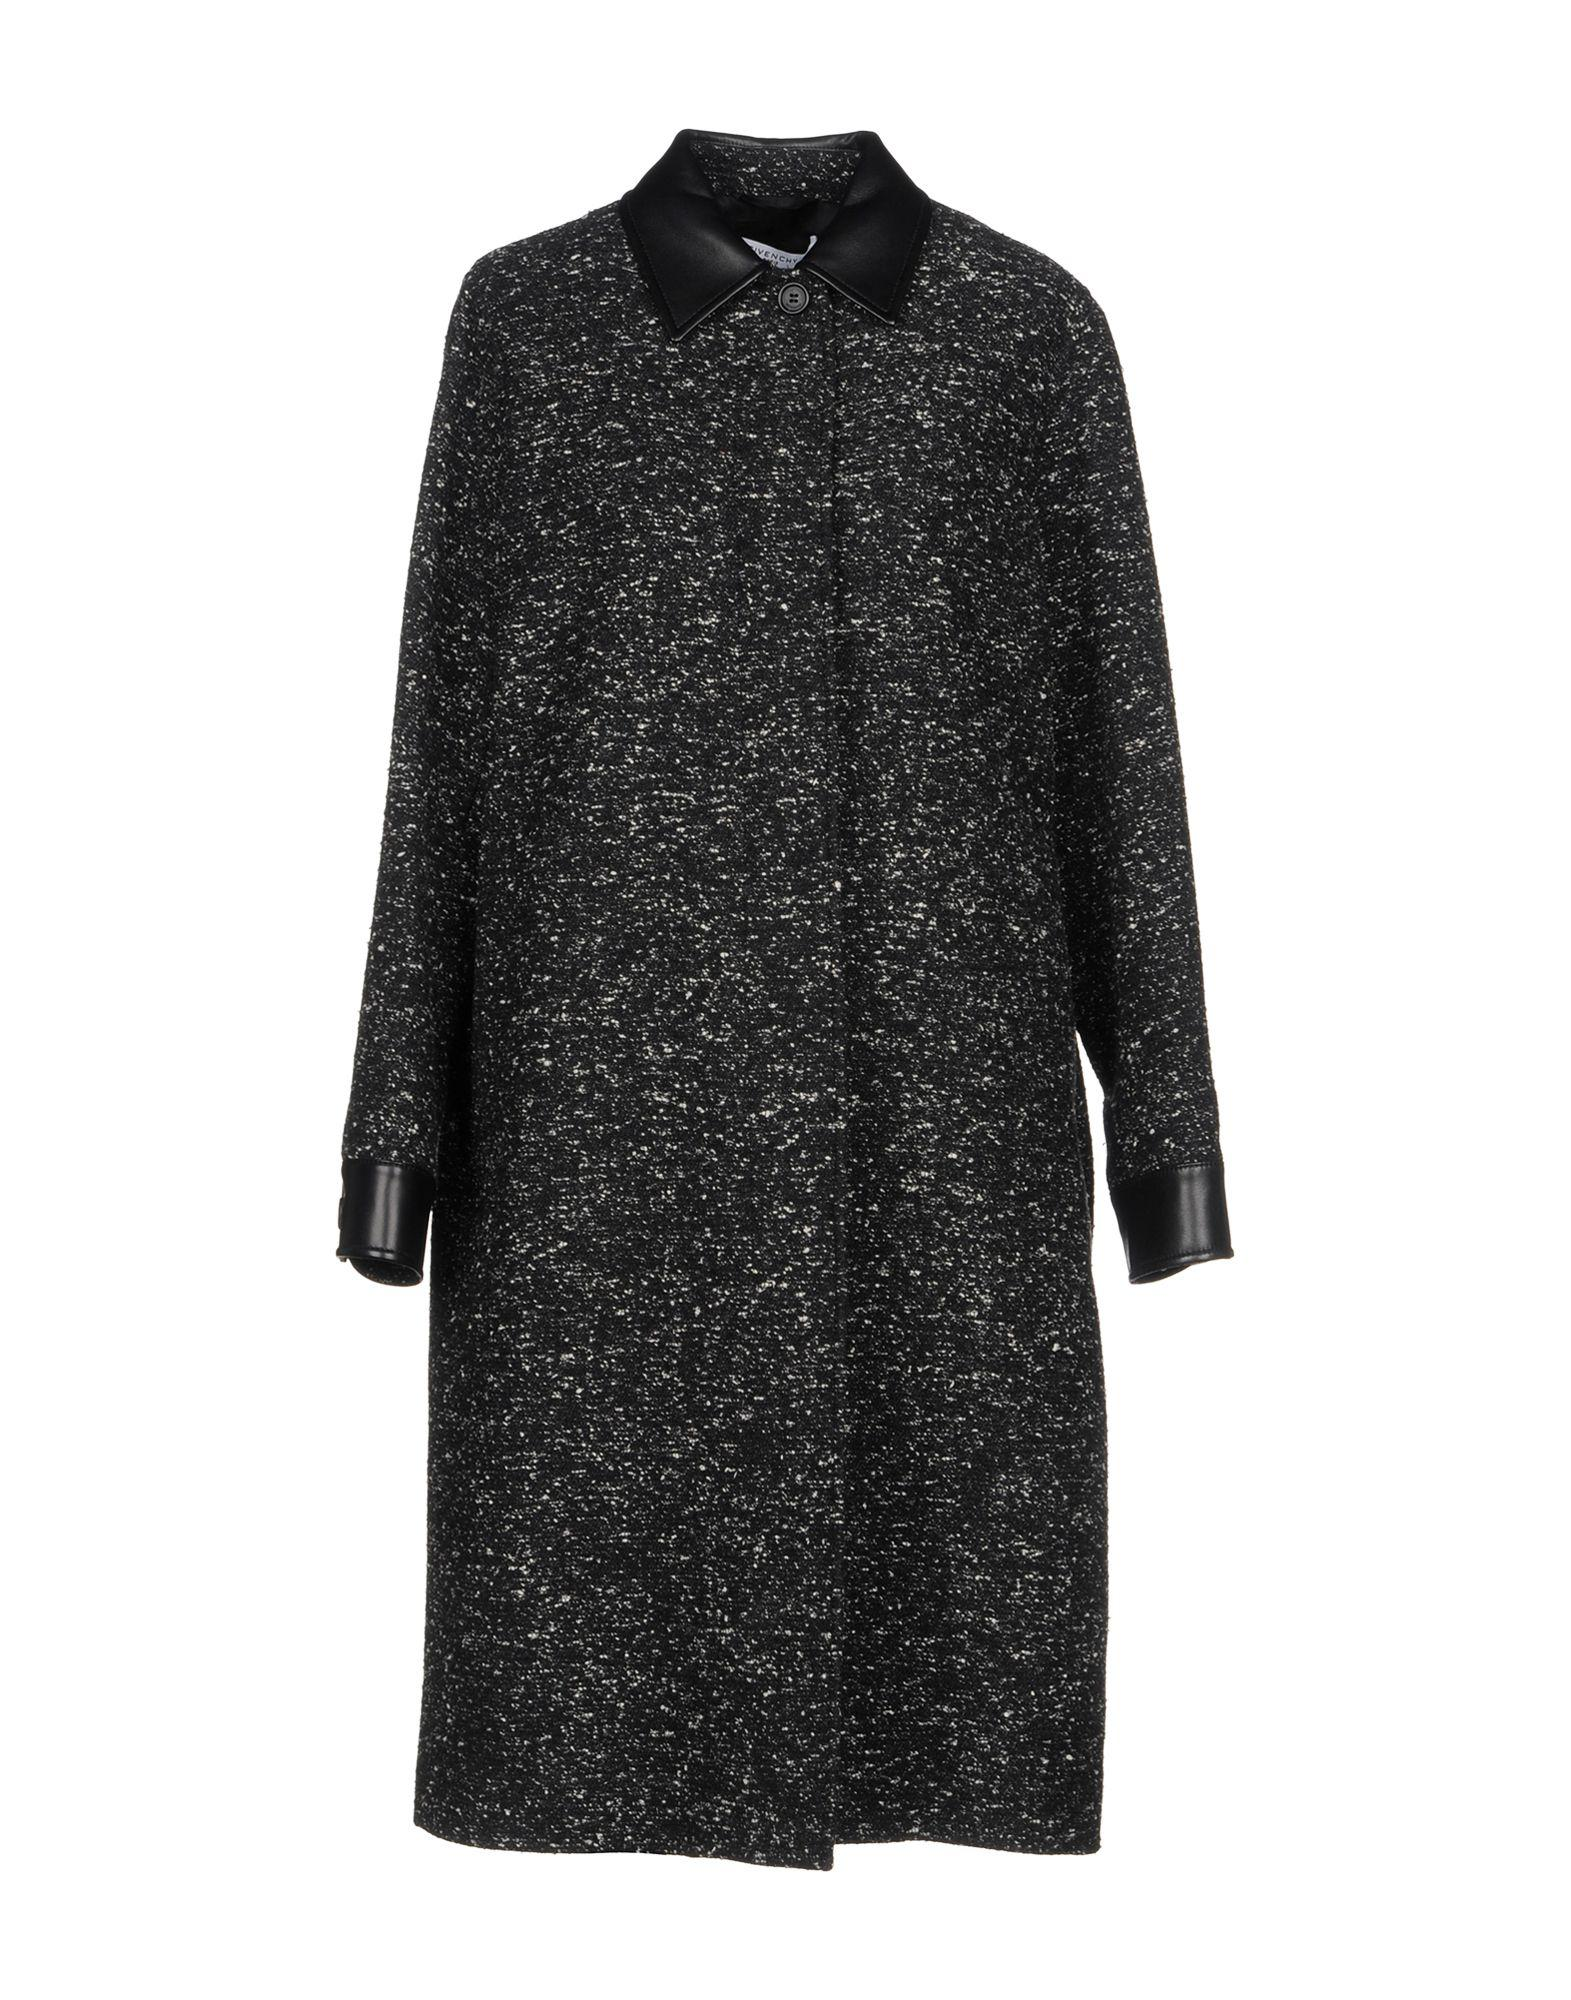 Givenchy Coats In Black